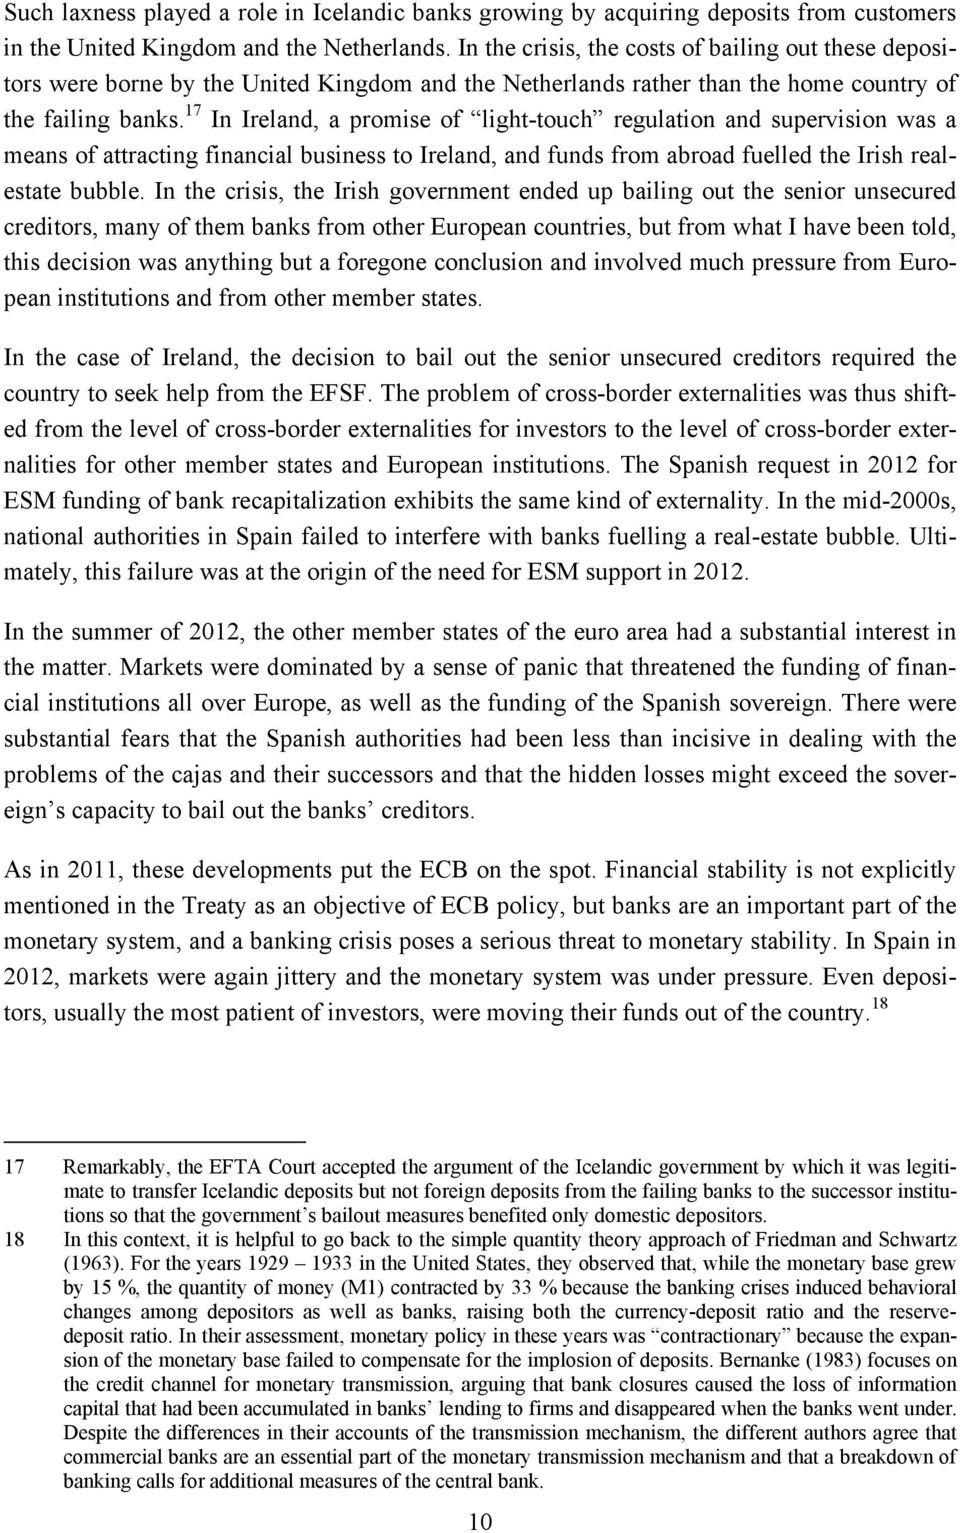 17 In Ireland, a promise of light-touch regulation and supervision was a means of attracting financial business to Ireland, and funds from abroad fuelled the Irish realestate bubble.